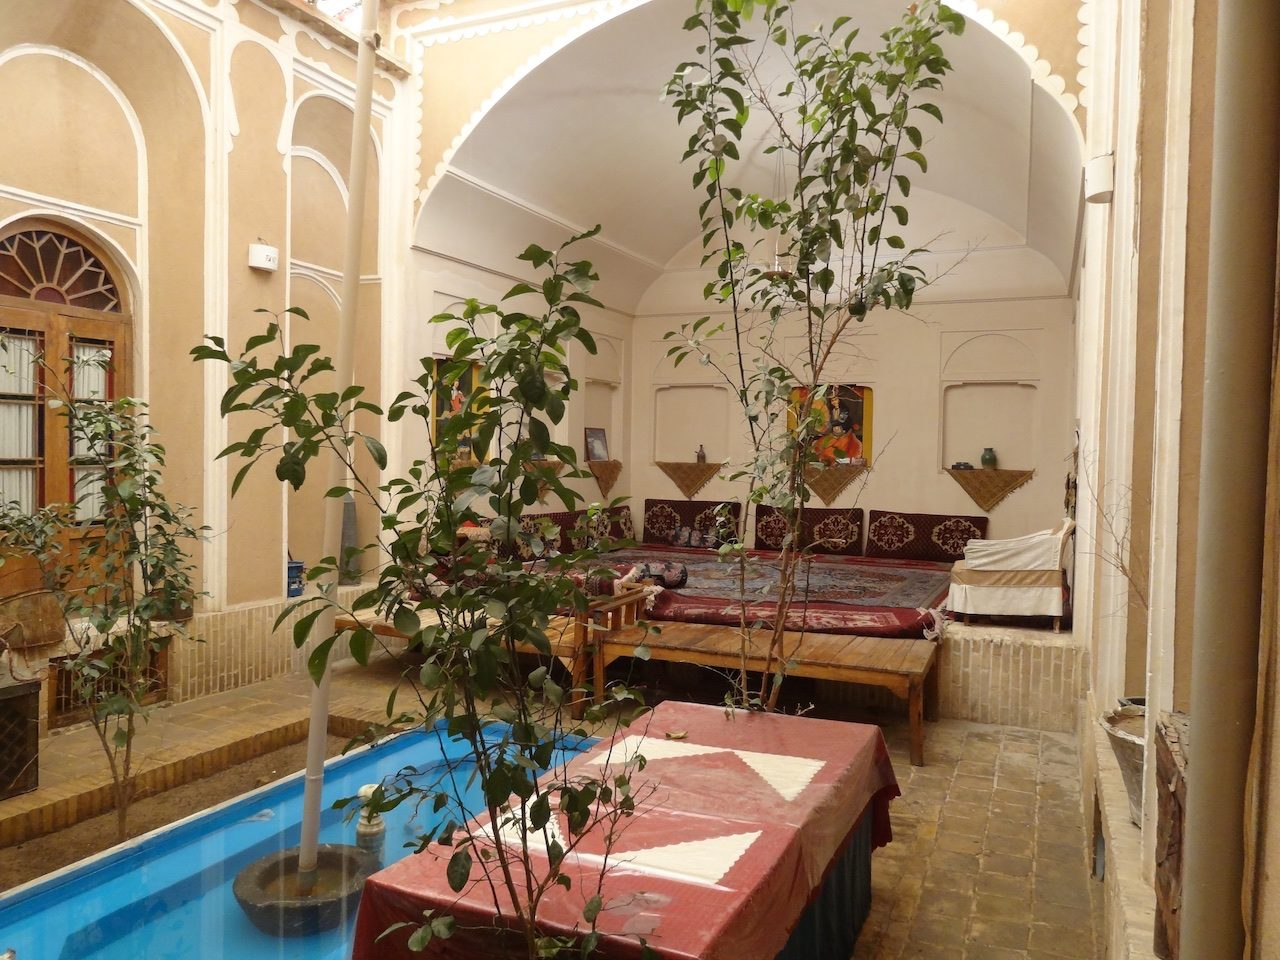 A smaller and cosier courtyard